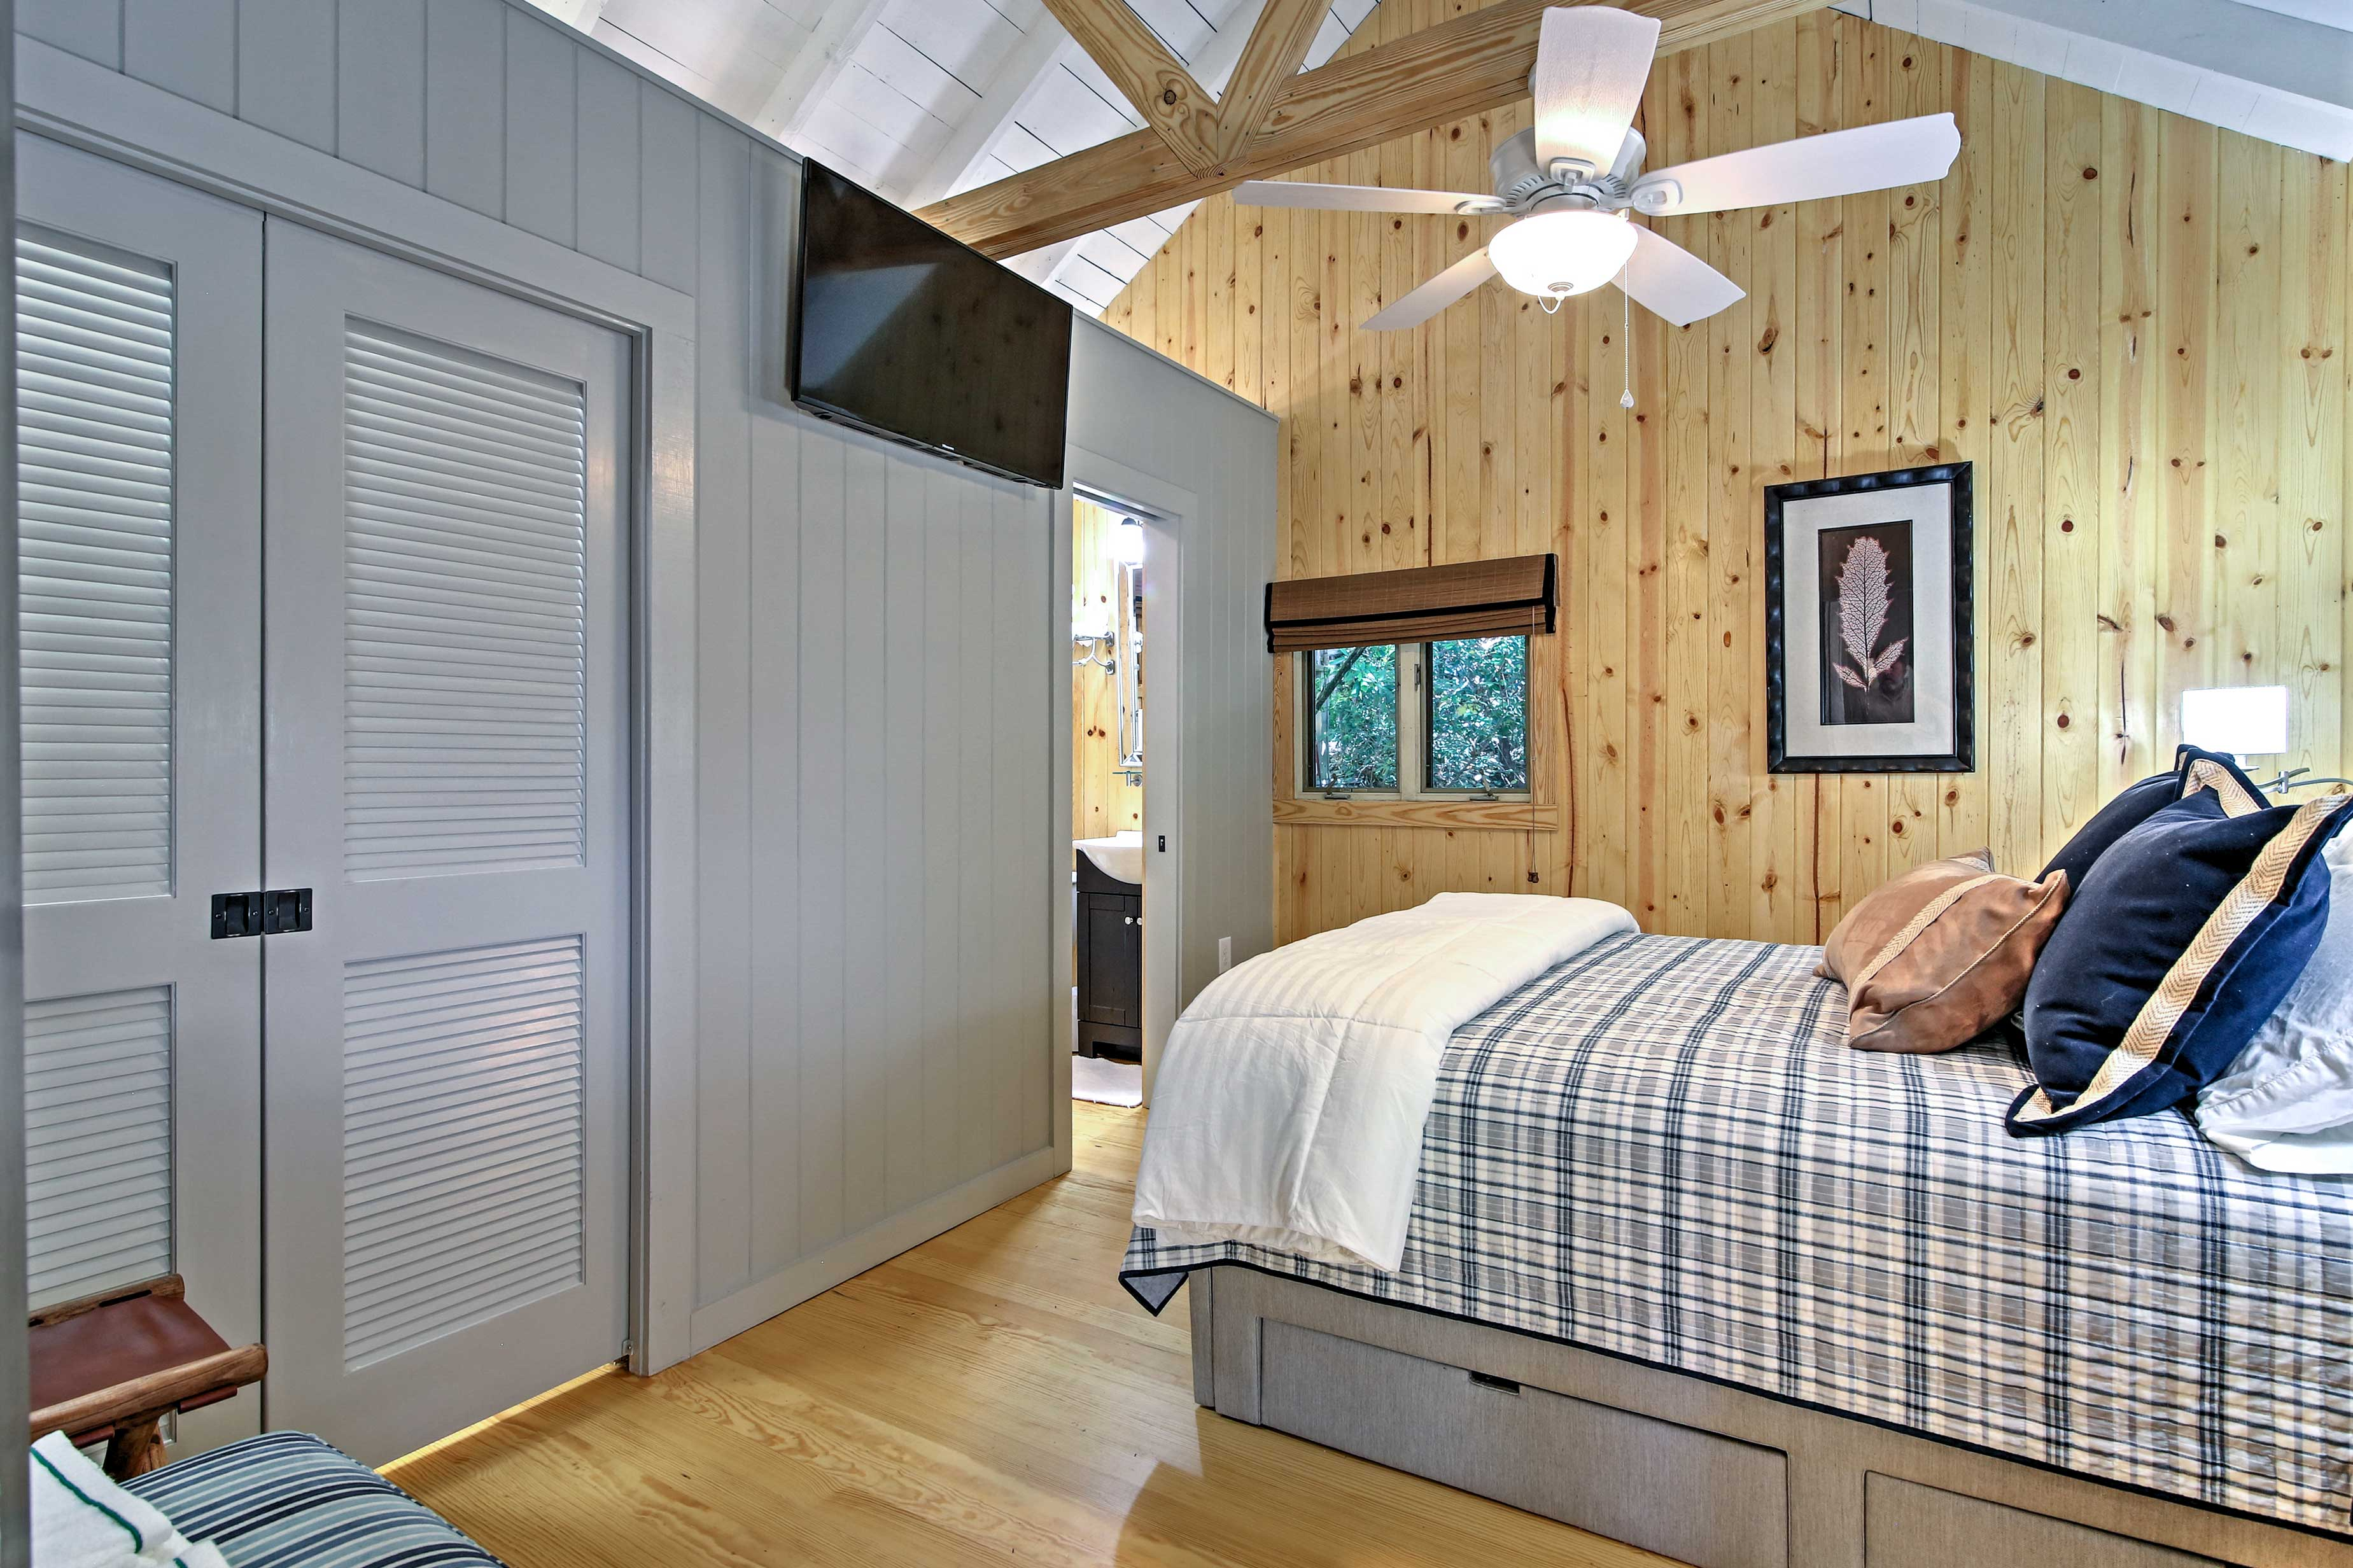 When you're ready for bed, choose between the 2 well-appointed bedrooms.